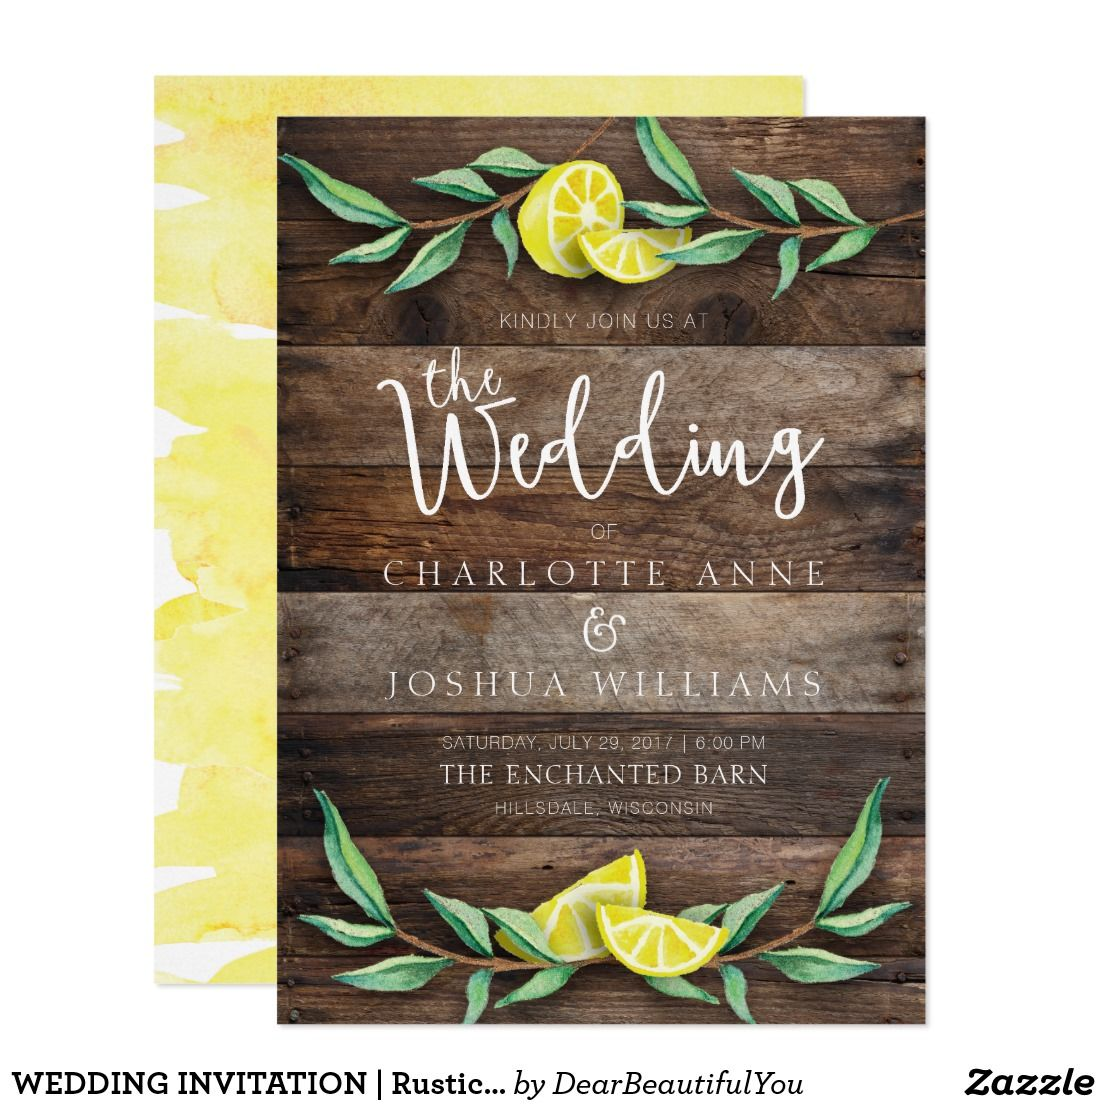 WEDDING INVITATION | Rustic Wood Lemon Watercolor Celebrate your ...